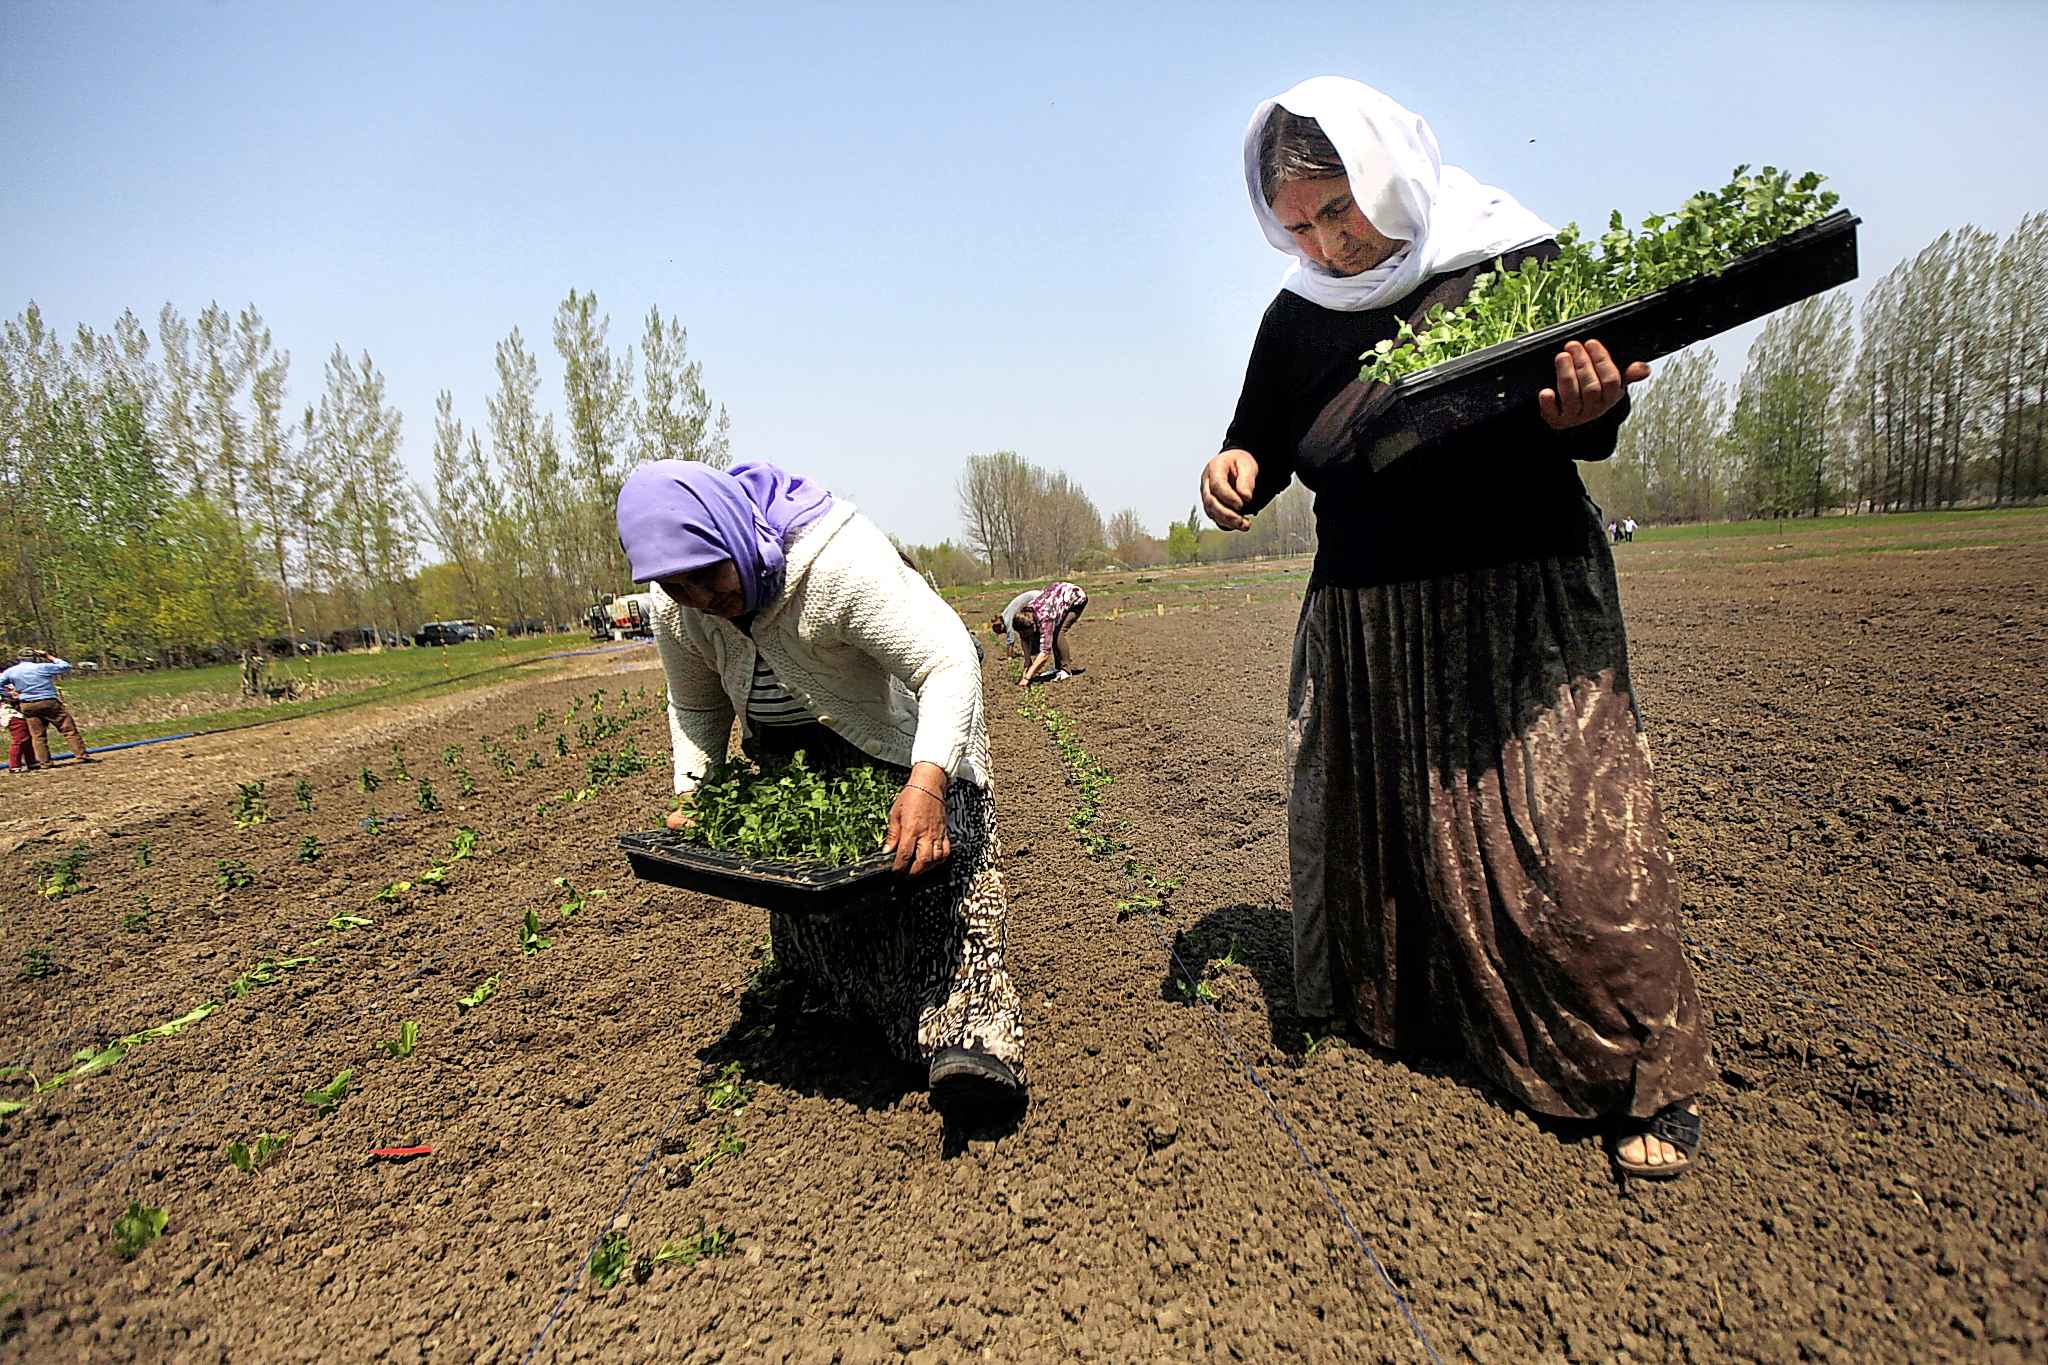 Rahlim Rafo (left) and Adol Alyas drop seedlings into rows.